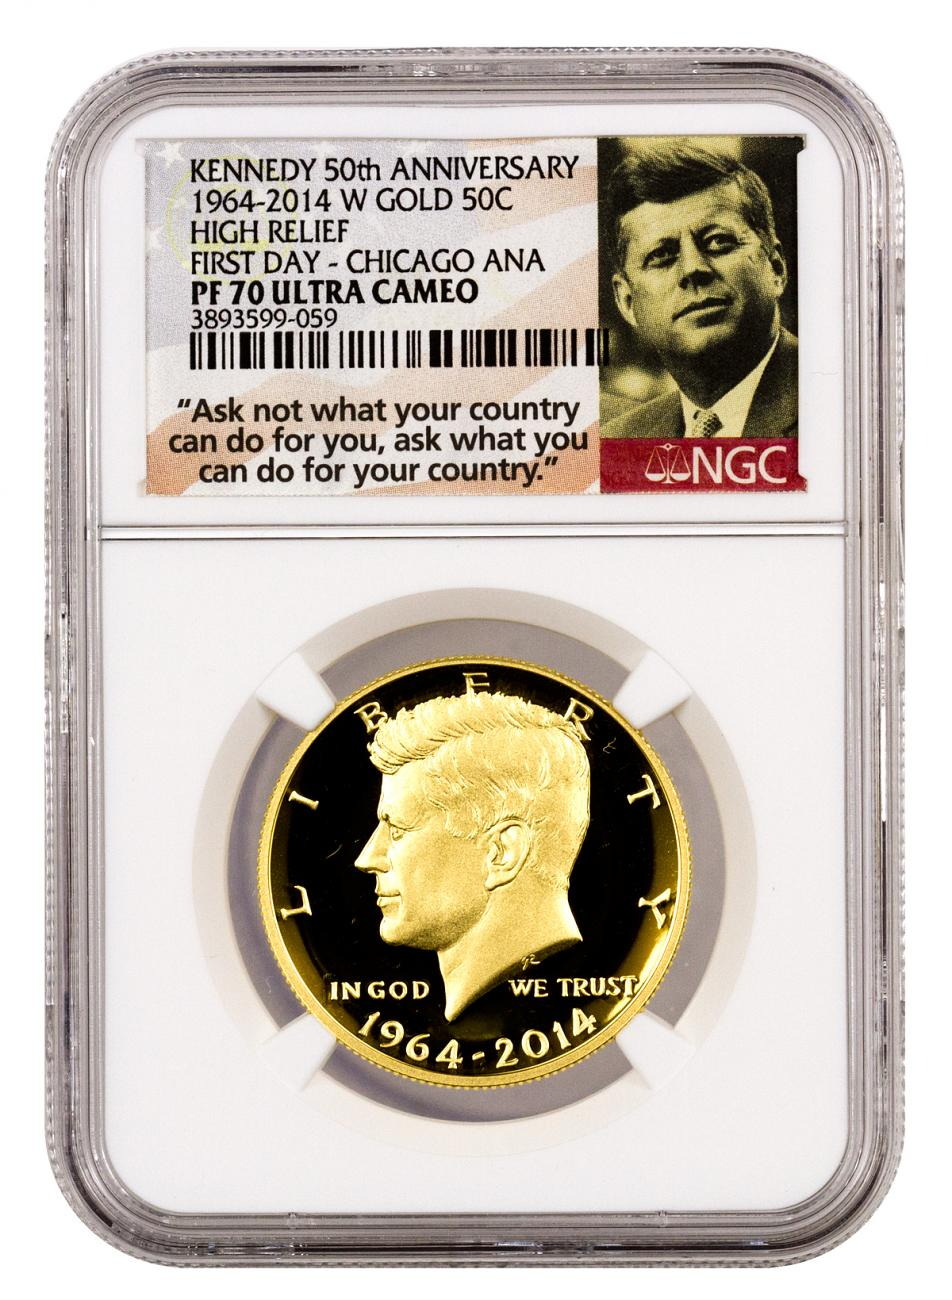 2014-W 3/4 oz. High Relief Proof Gold Kennedy Half Dollar - 50th Anniversary - NGC PF70 UC First Day of Issue (Chicago ANA Ask Not Label)